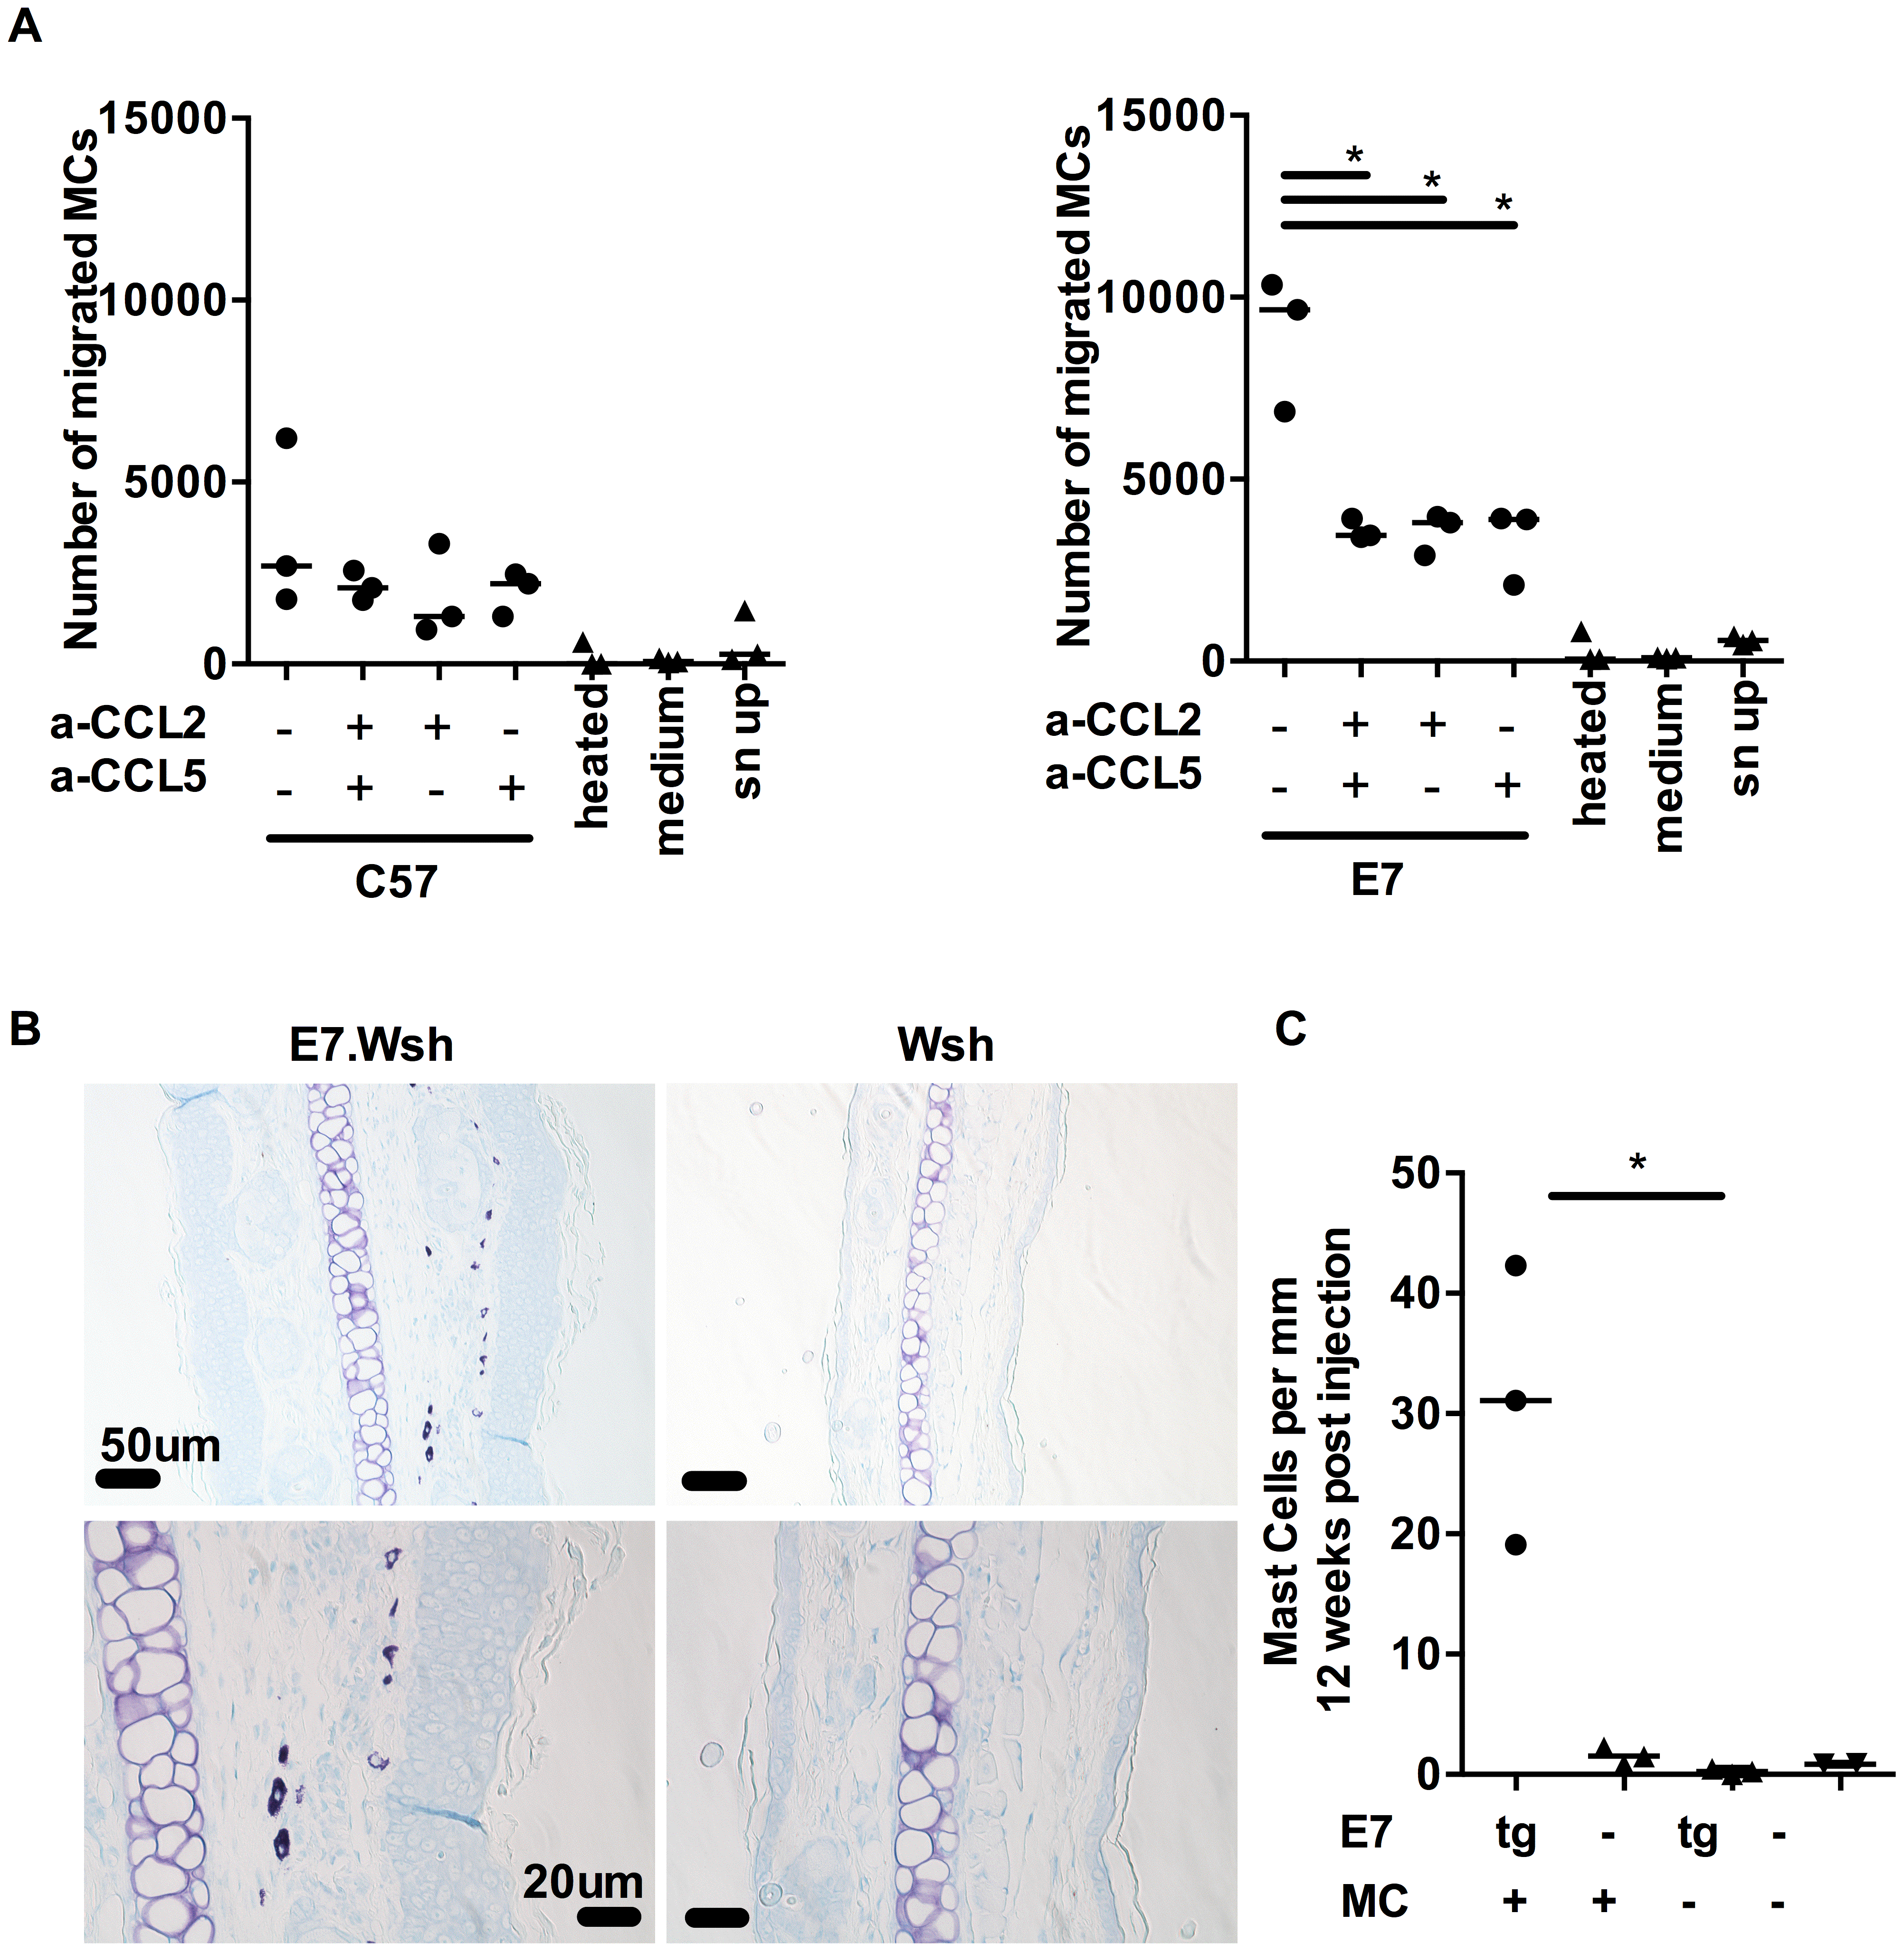 MCs migrate towards CCL2 and CCL5 and are recruited to E7 ear skin.